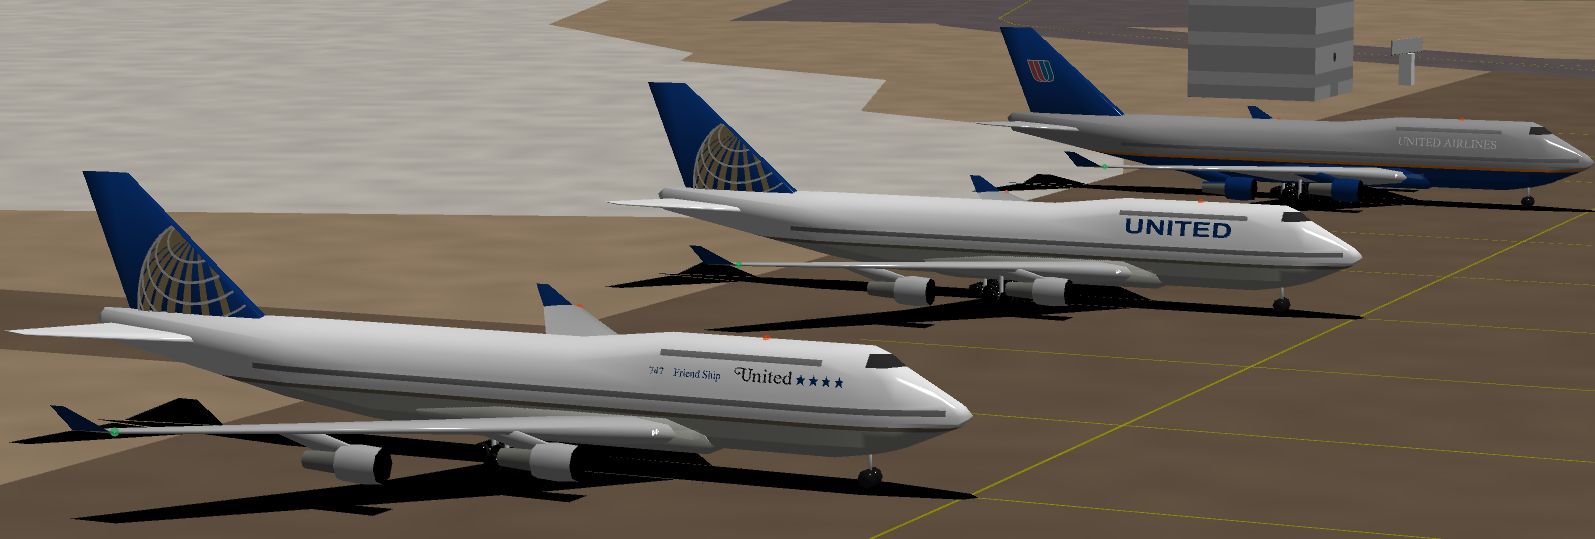 UAL 747s.png